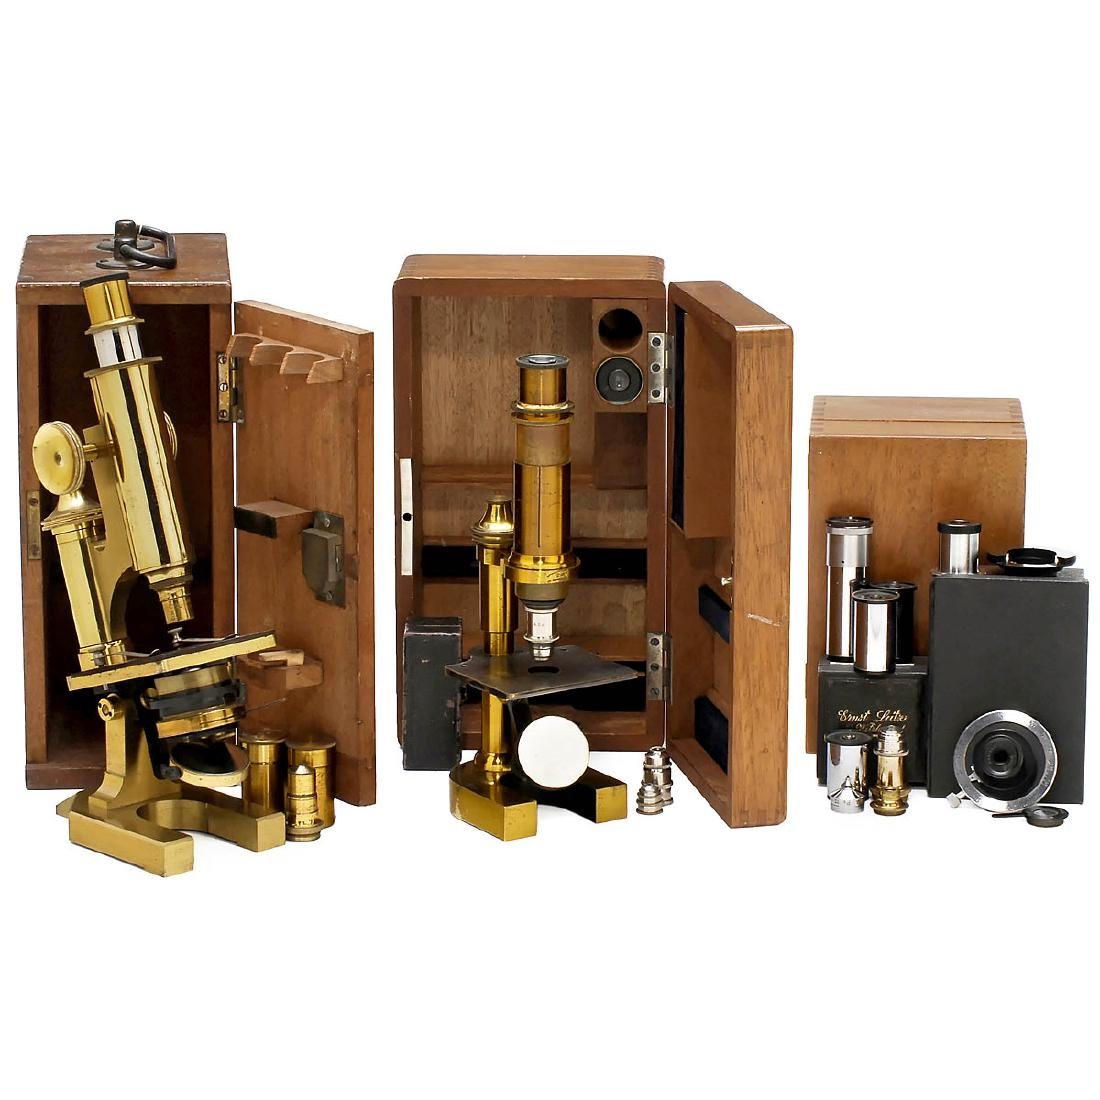 2 Brass Microscopes and Accessories